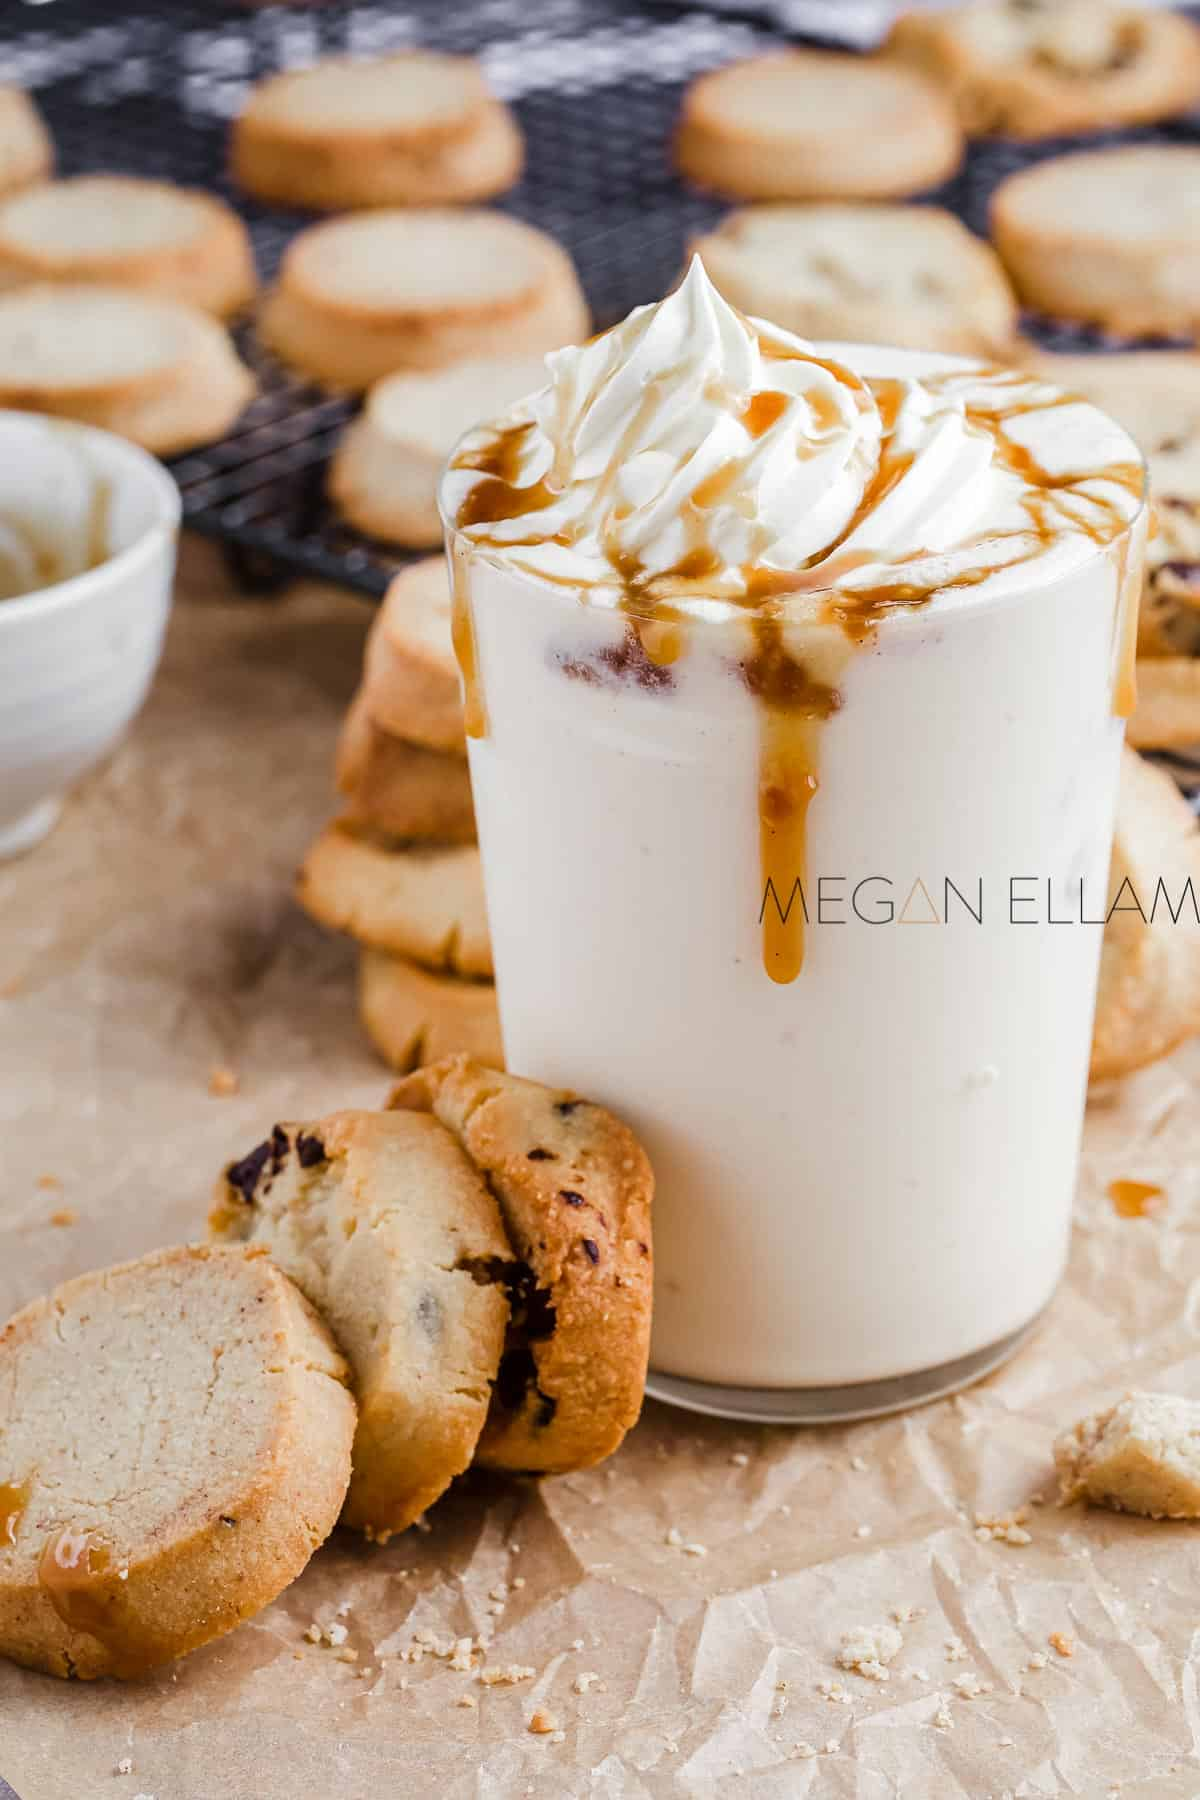 A keto milk smoothie and cookies stack.